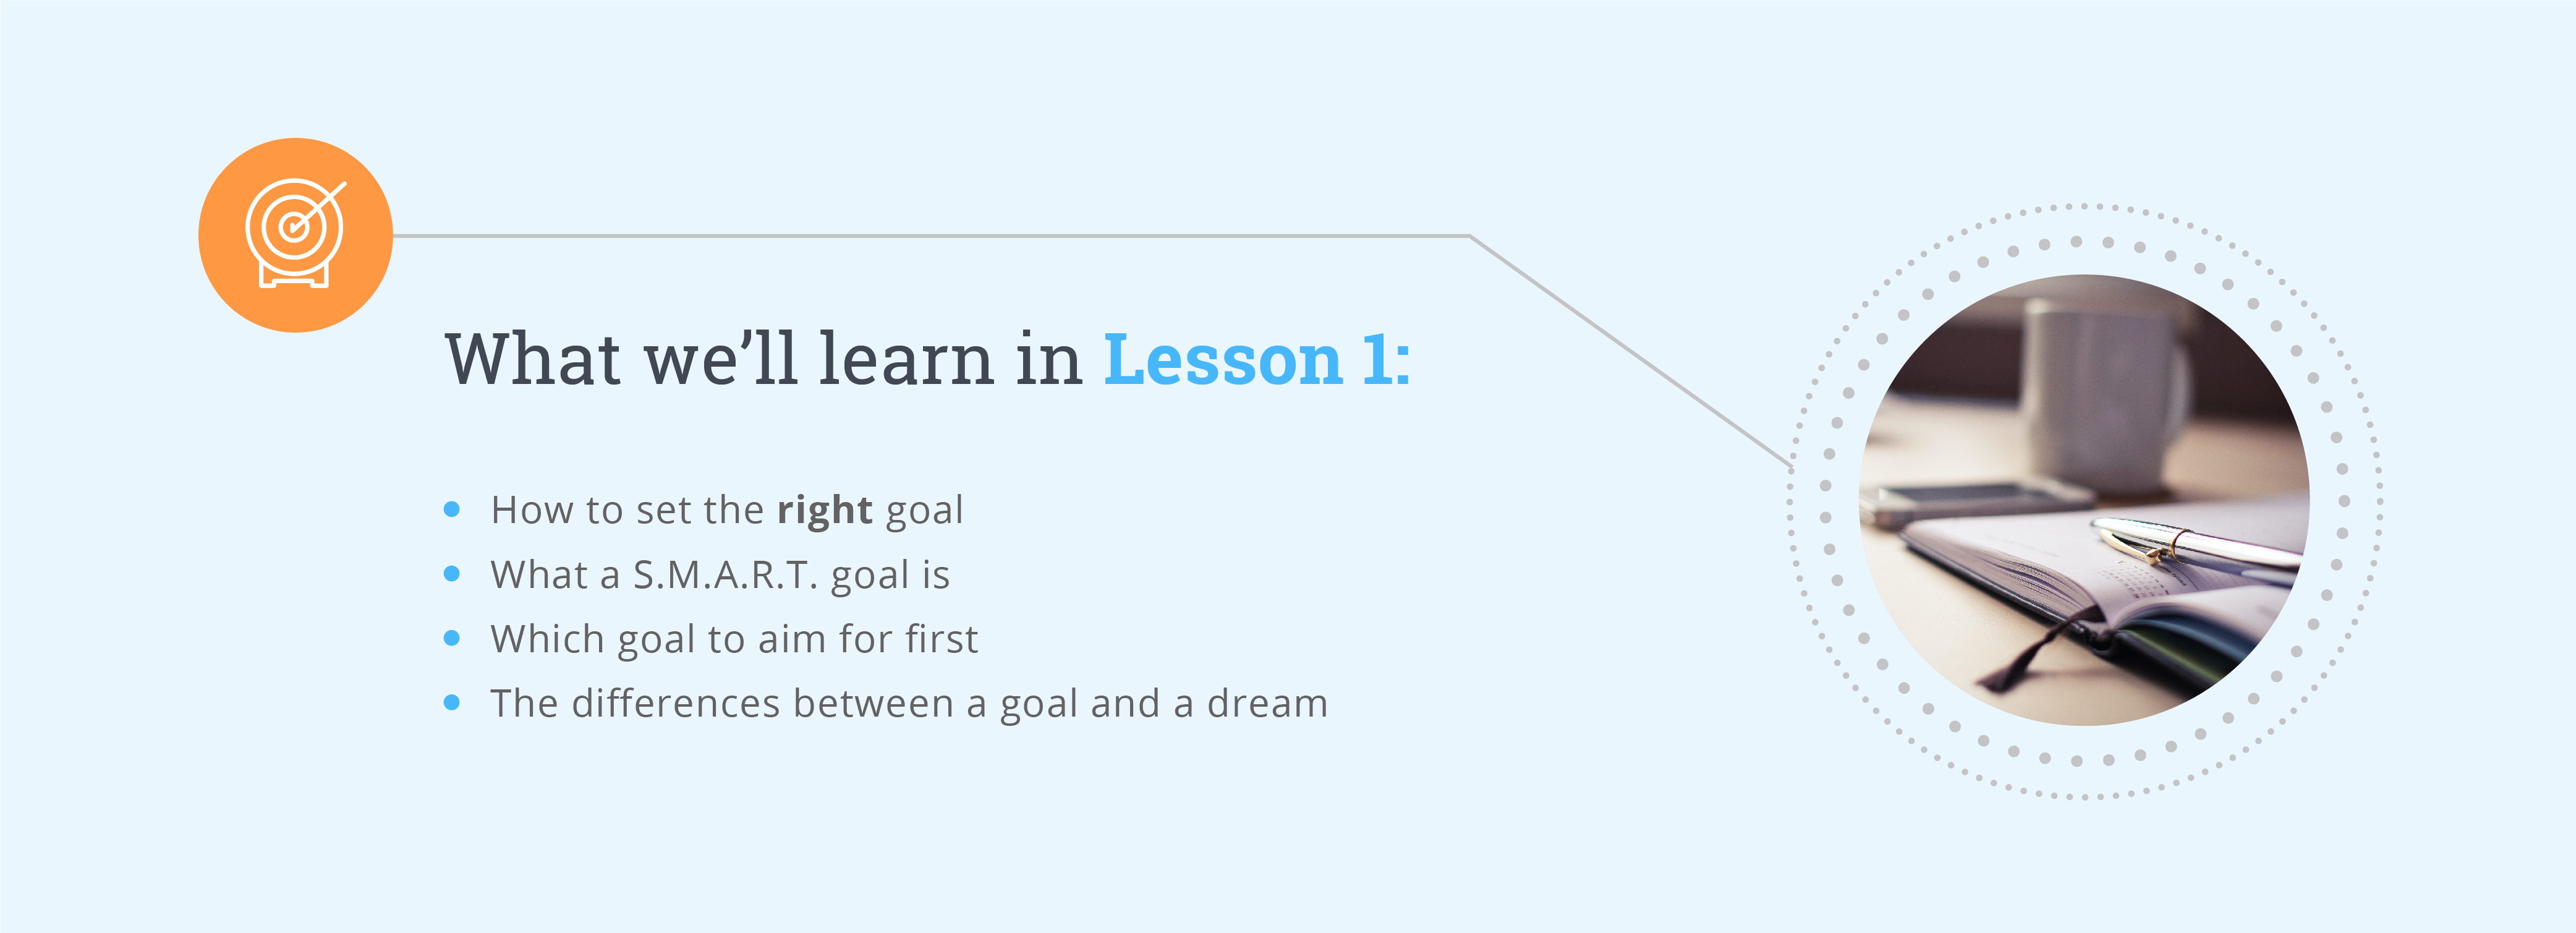 Reaching Your Goals Lesson 1